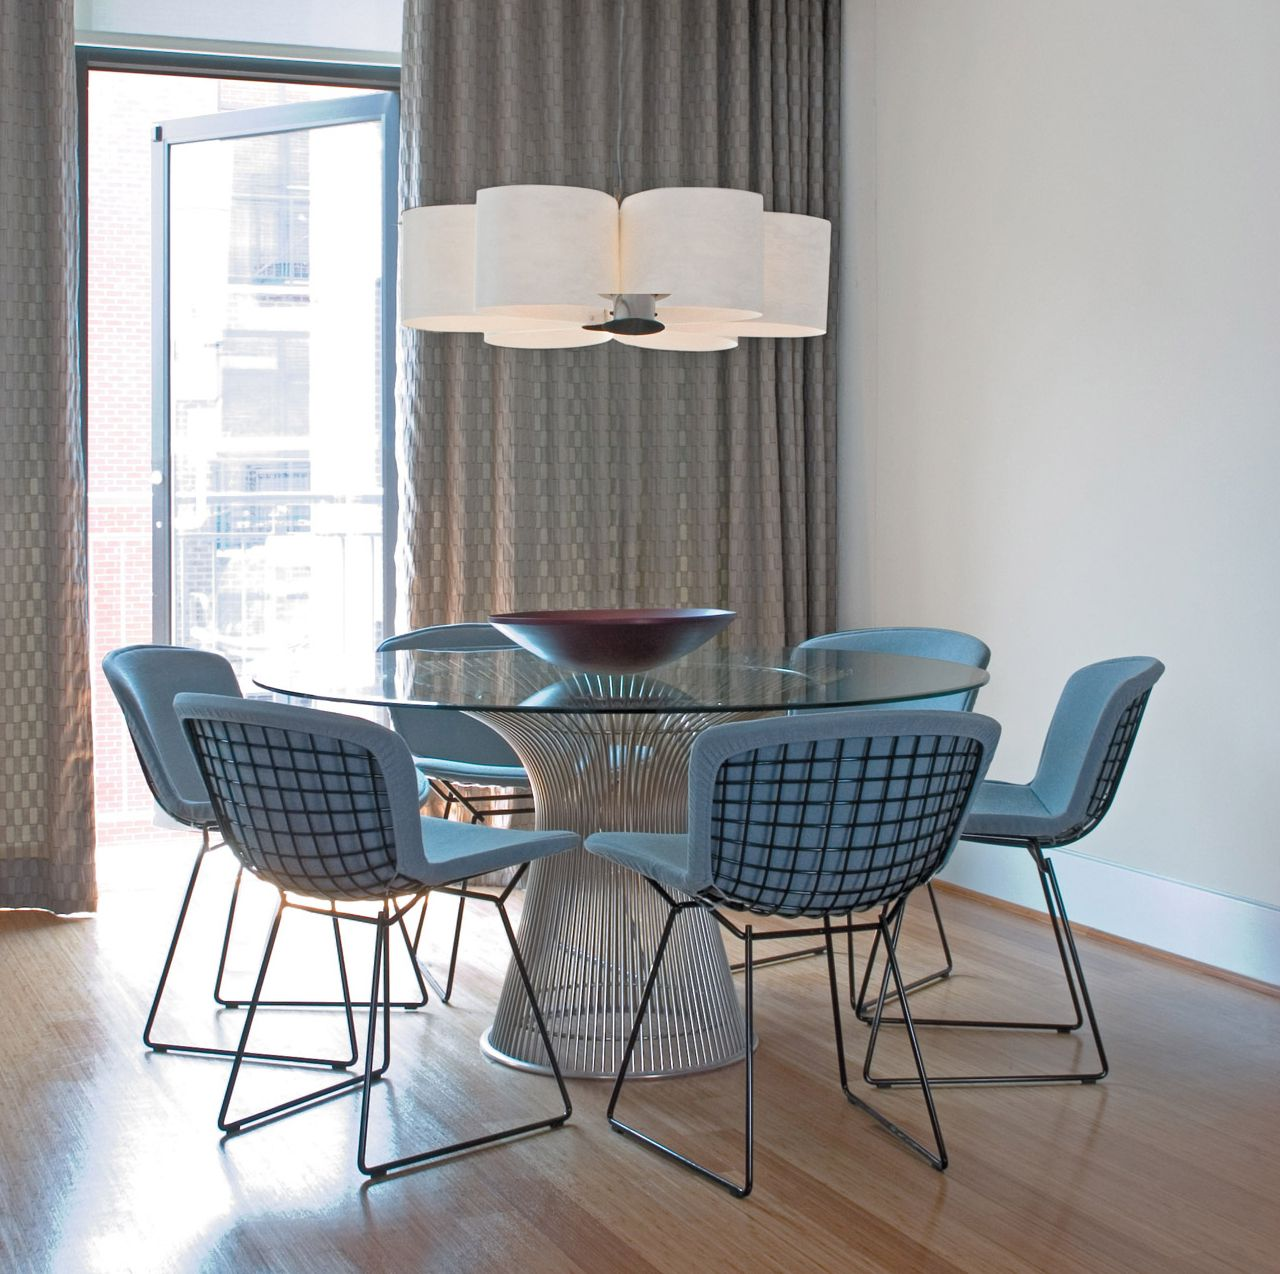 Bertoia Side Chair With Full Cover In Classic Boucle Designed By Harry Bertoia Bertoia Side Chair Platner Dining Table Warren Platner Dining Table